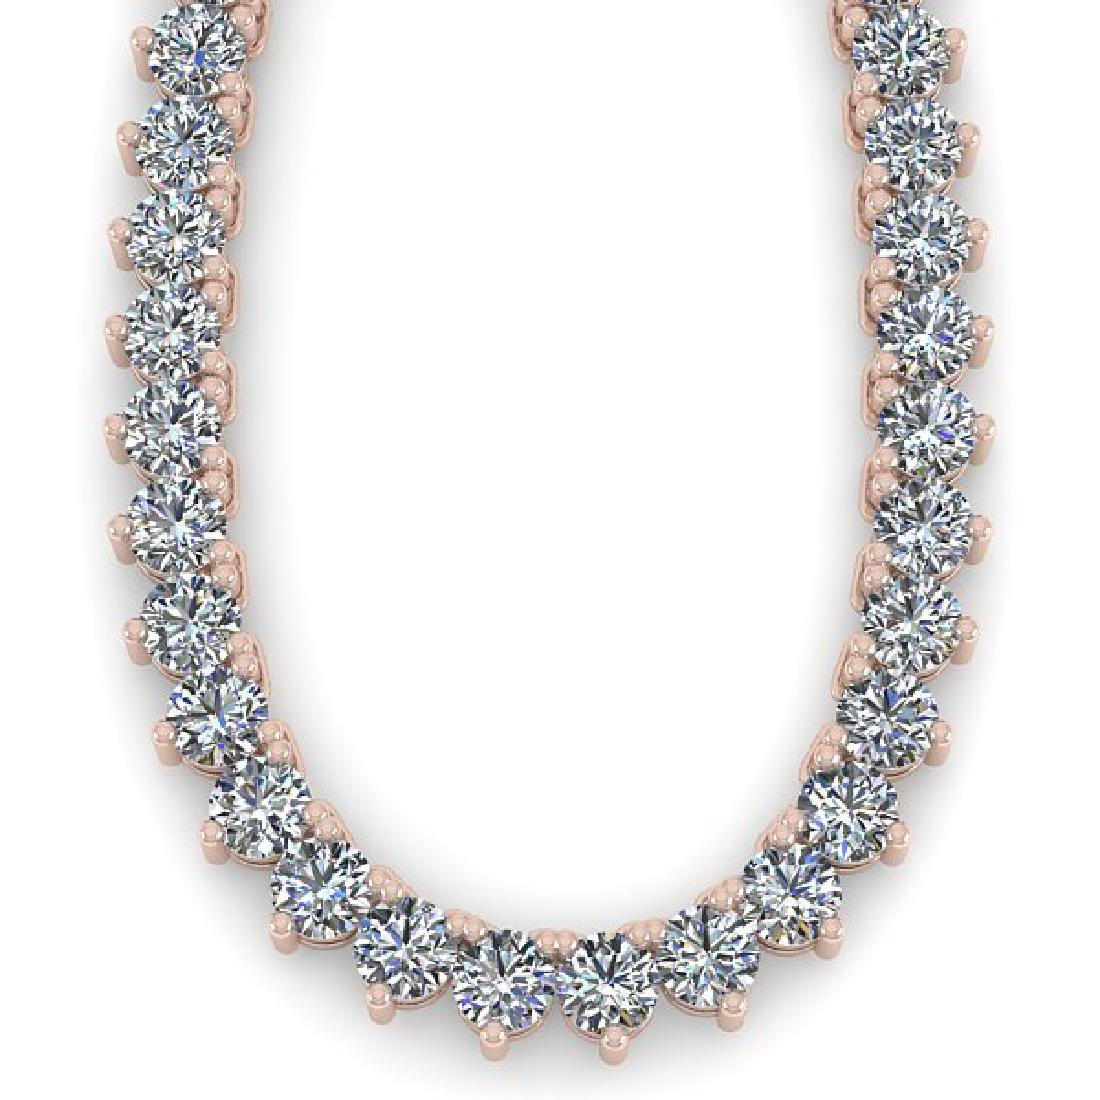 33 CTW Solitaire SI Diamond Necklace 18K Rose Gold - 2